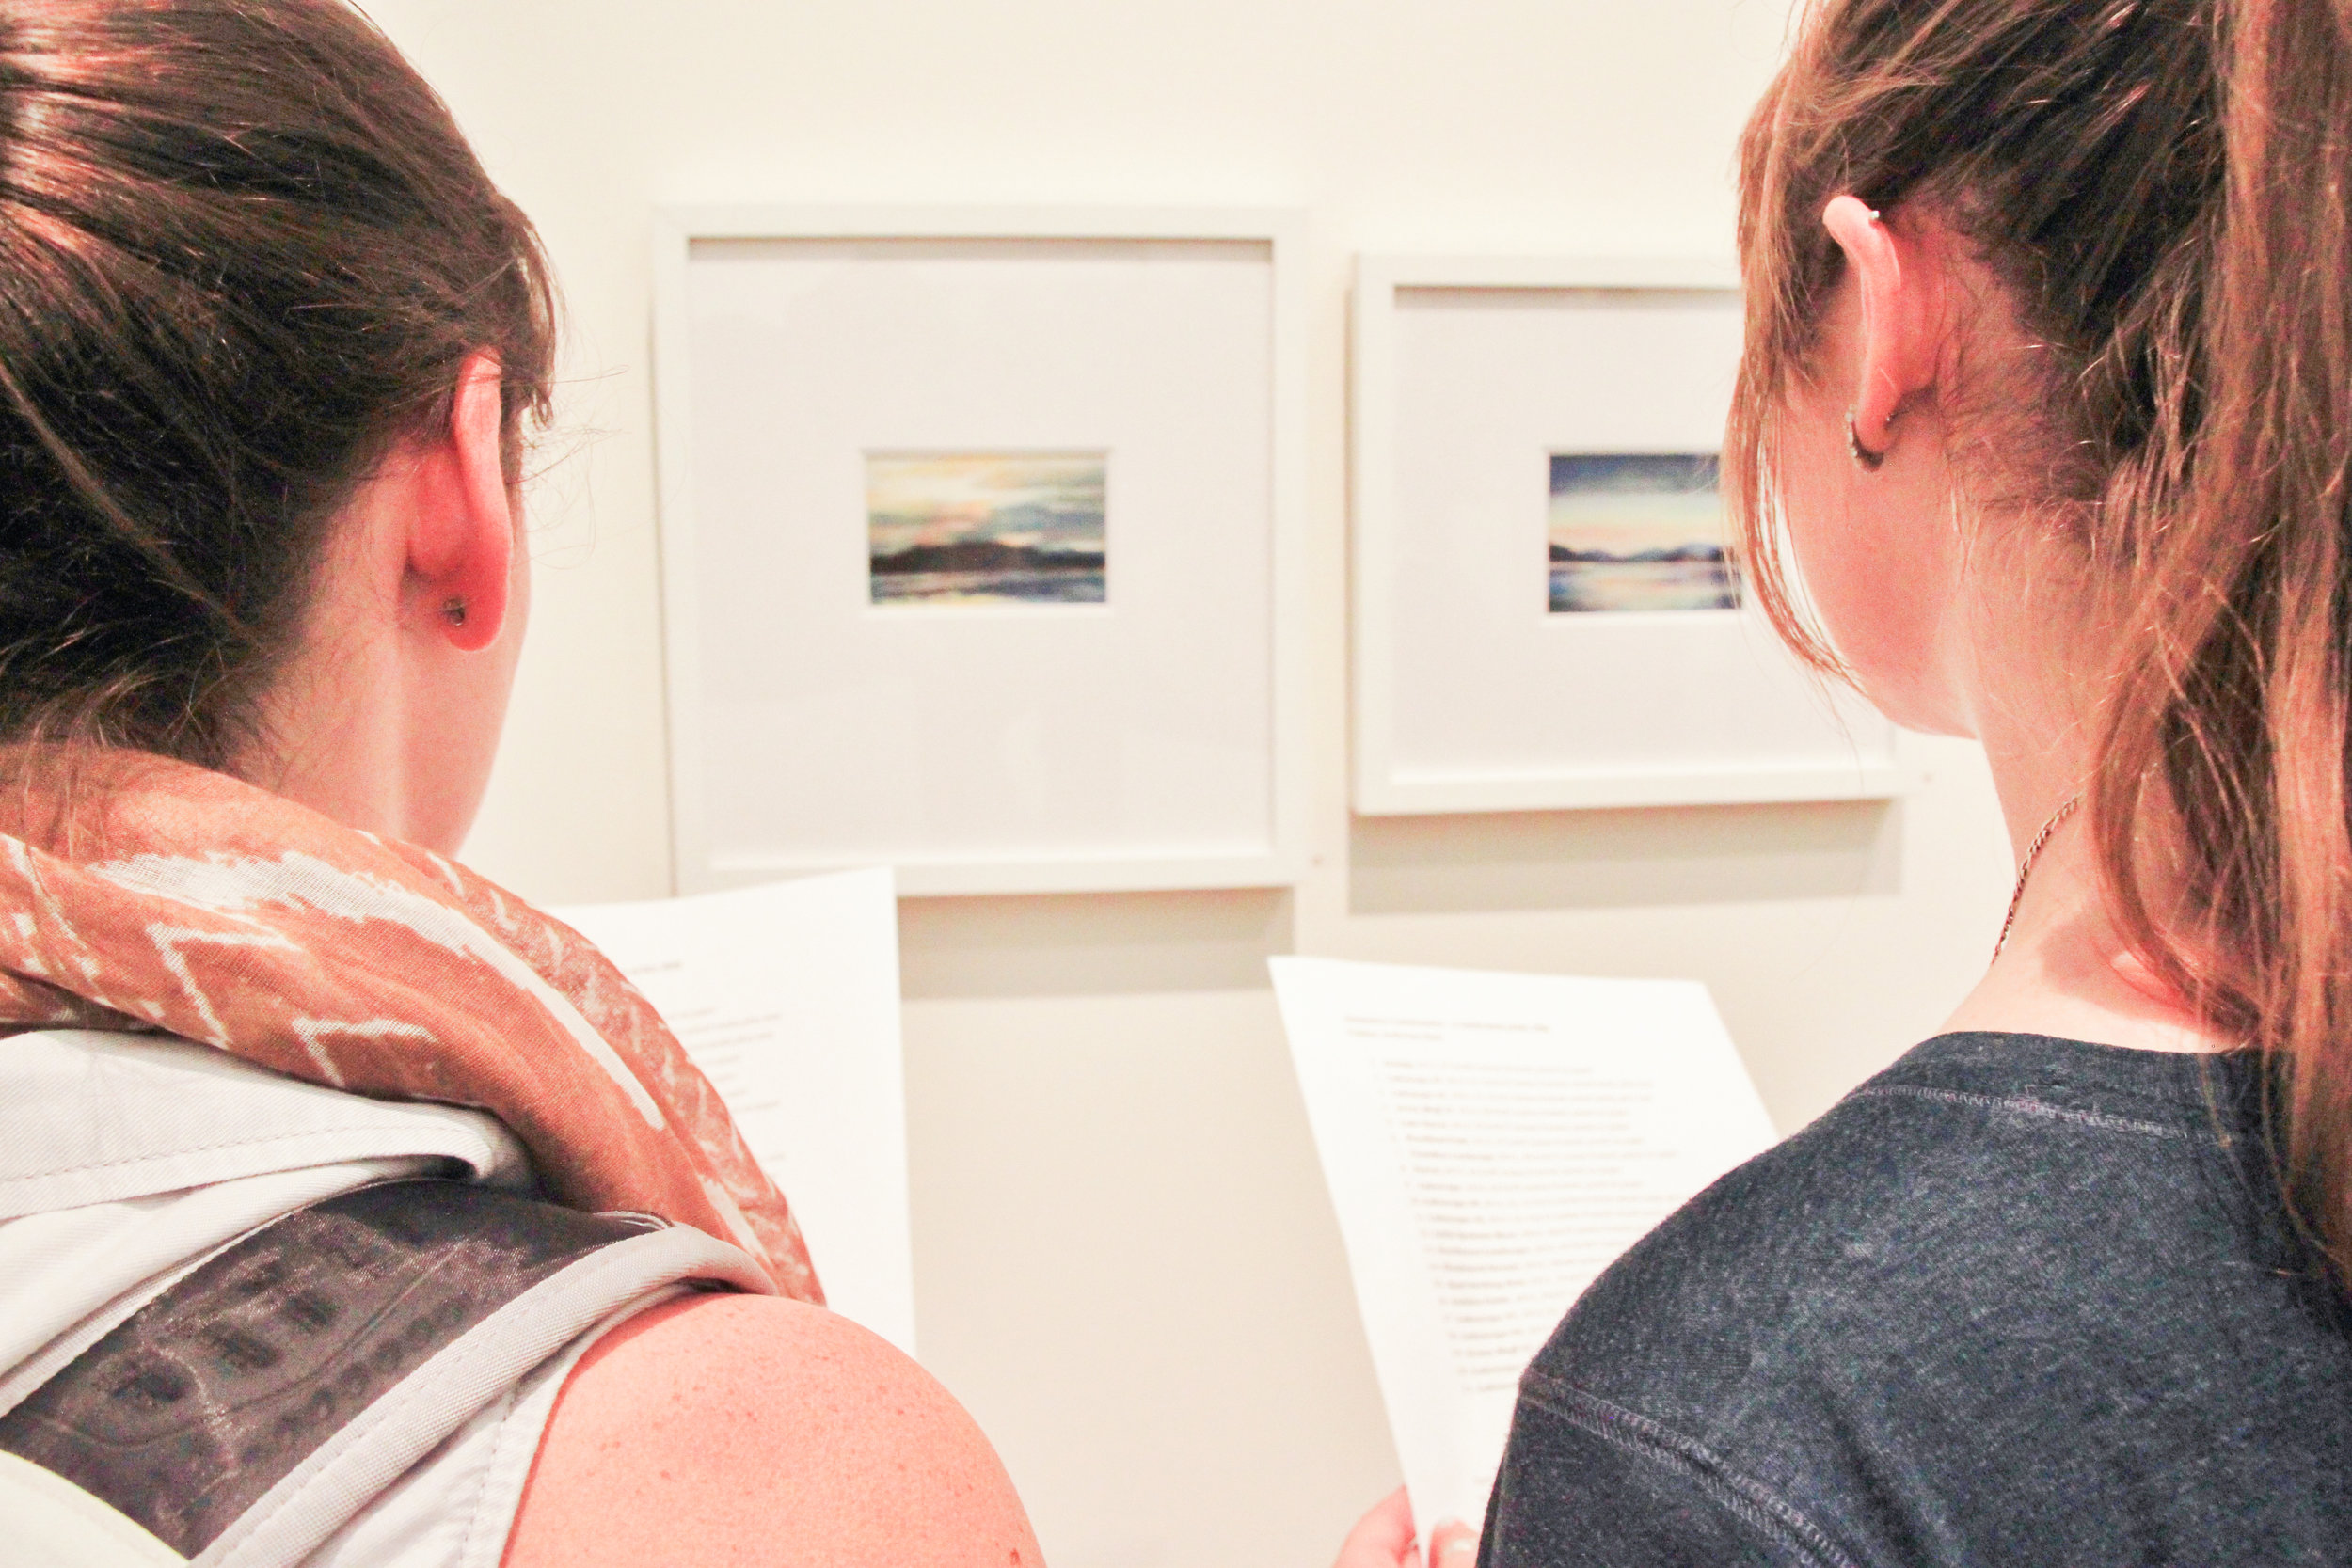 Students observe Northwest-inspired landscape artwork by Pauline Anderson Haas, a former Whitworth professor, in the Bryan Oliver Gallery. Rachel Anderson|Photographer